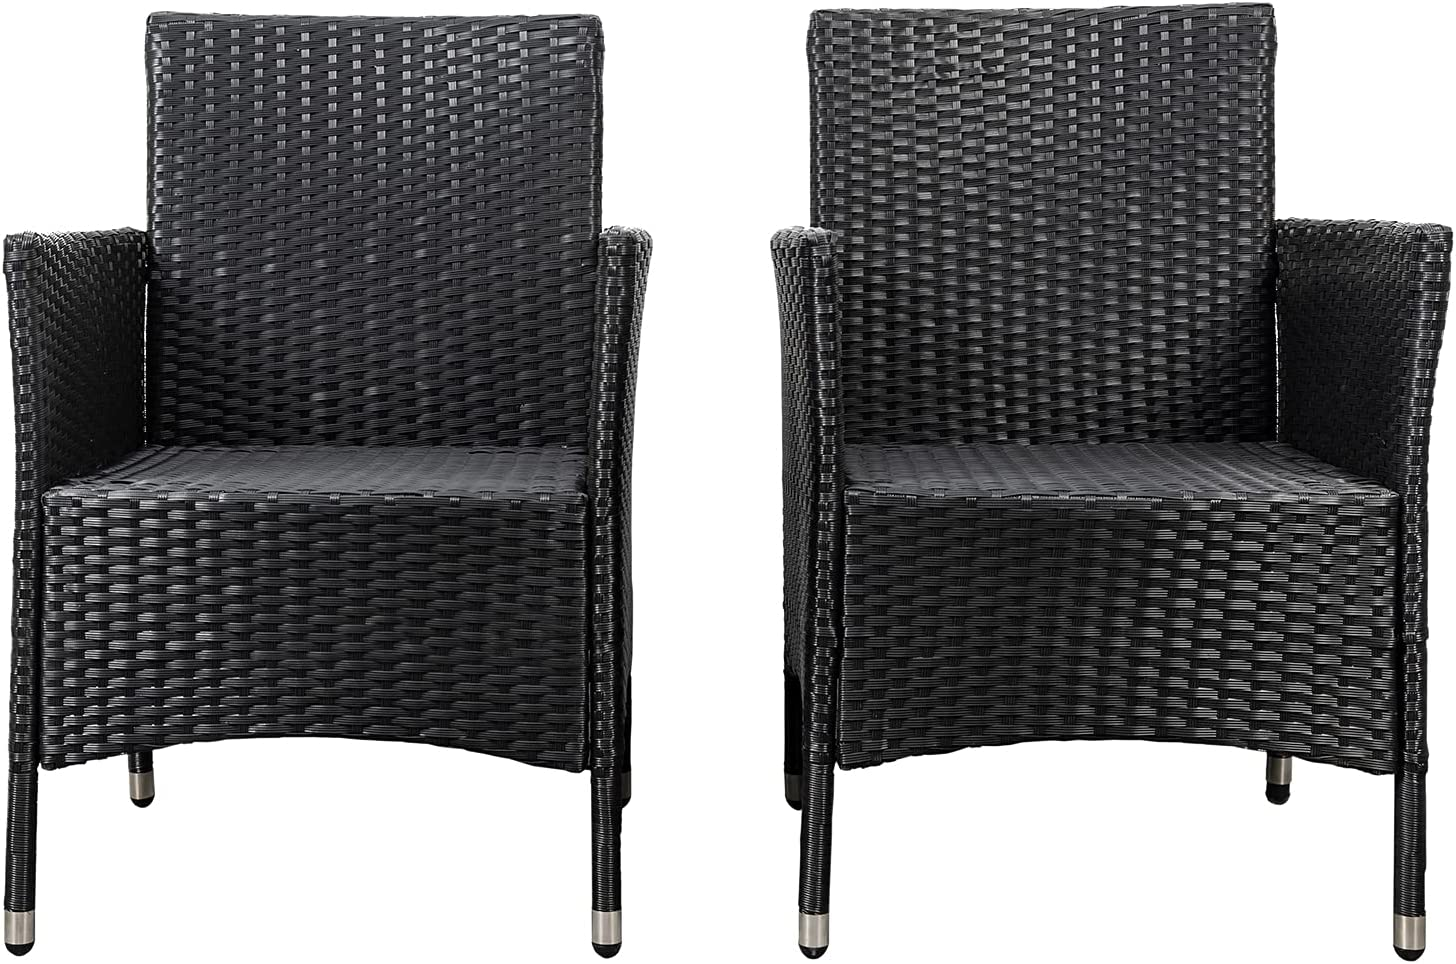 SALE開催中 Outdoor Patio Furniture Sets Oversized 新商品 Wicker Se Chairs PE